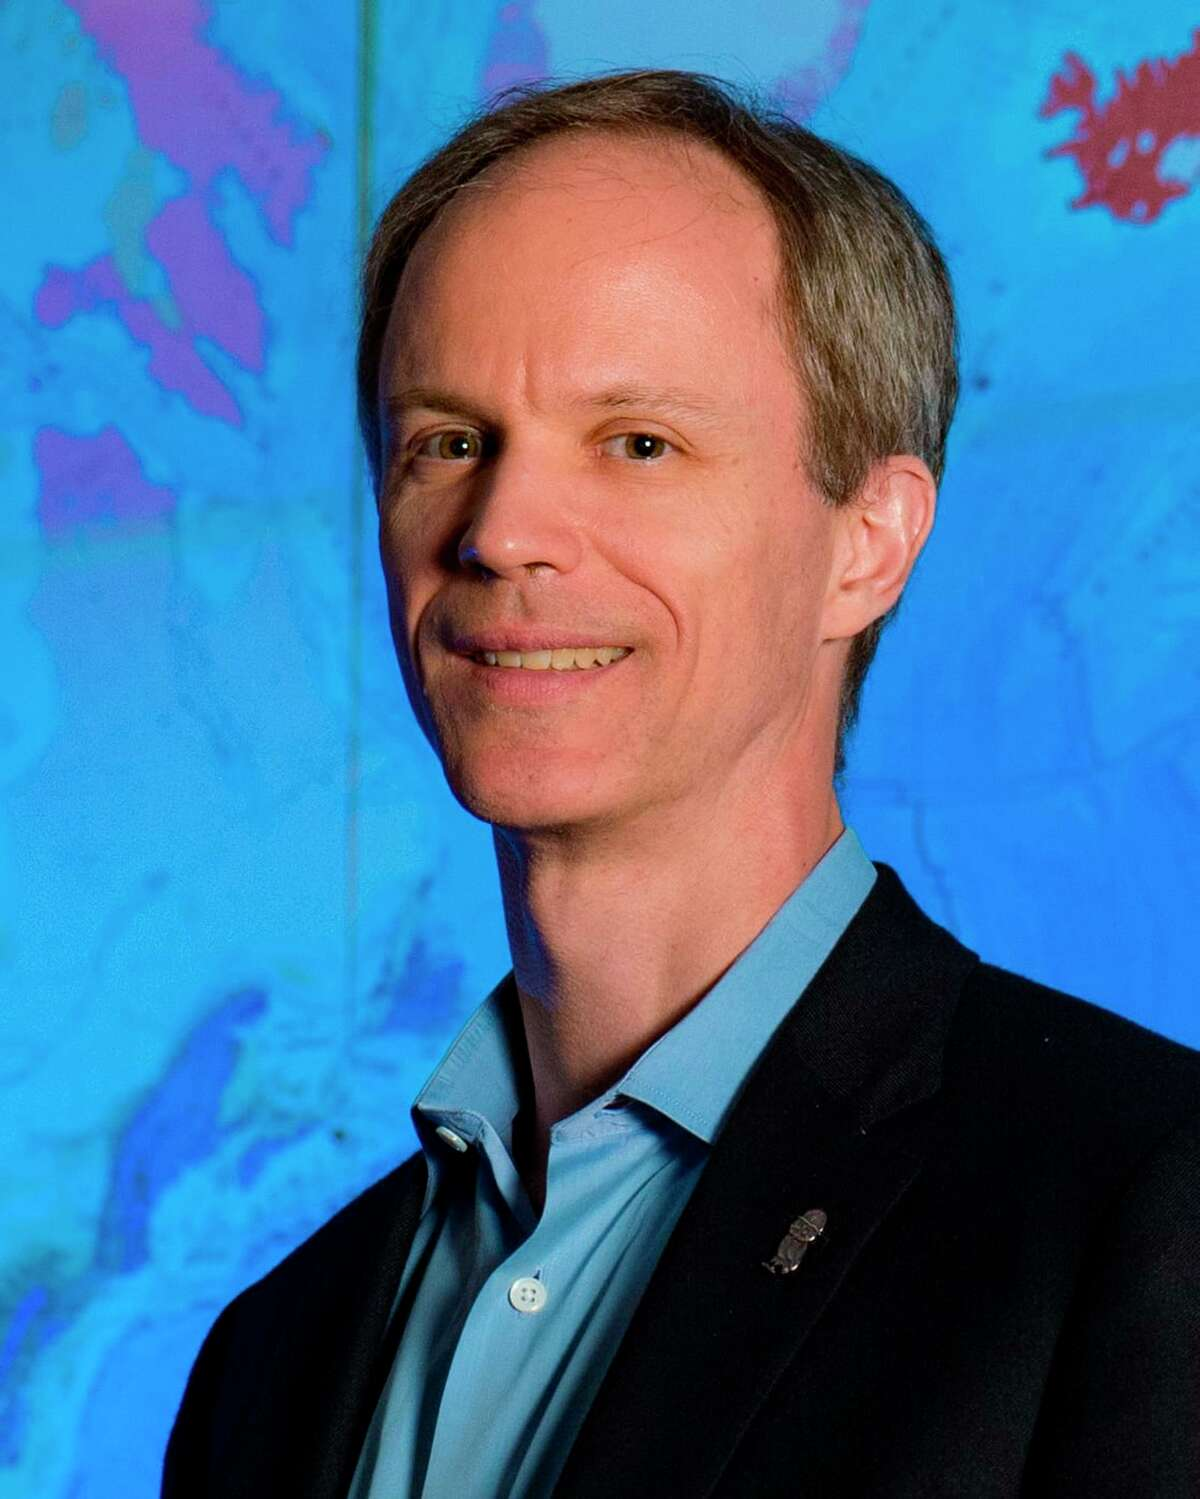 Michael Deem, seen in an undated press release image released by Rice University, is the John W. Cox Professor in Biochemical and Genetic Engineering and professor of physics and astronomy at Rice University.